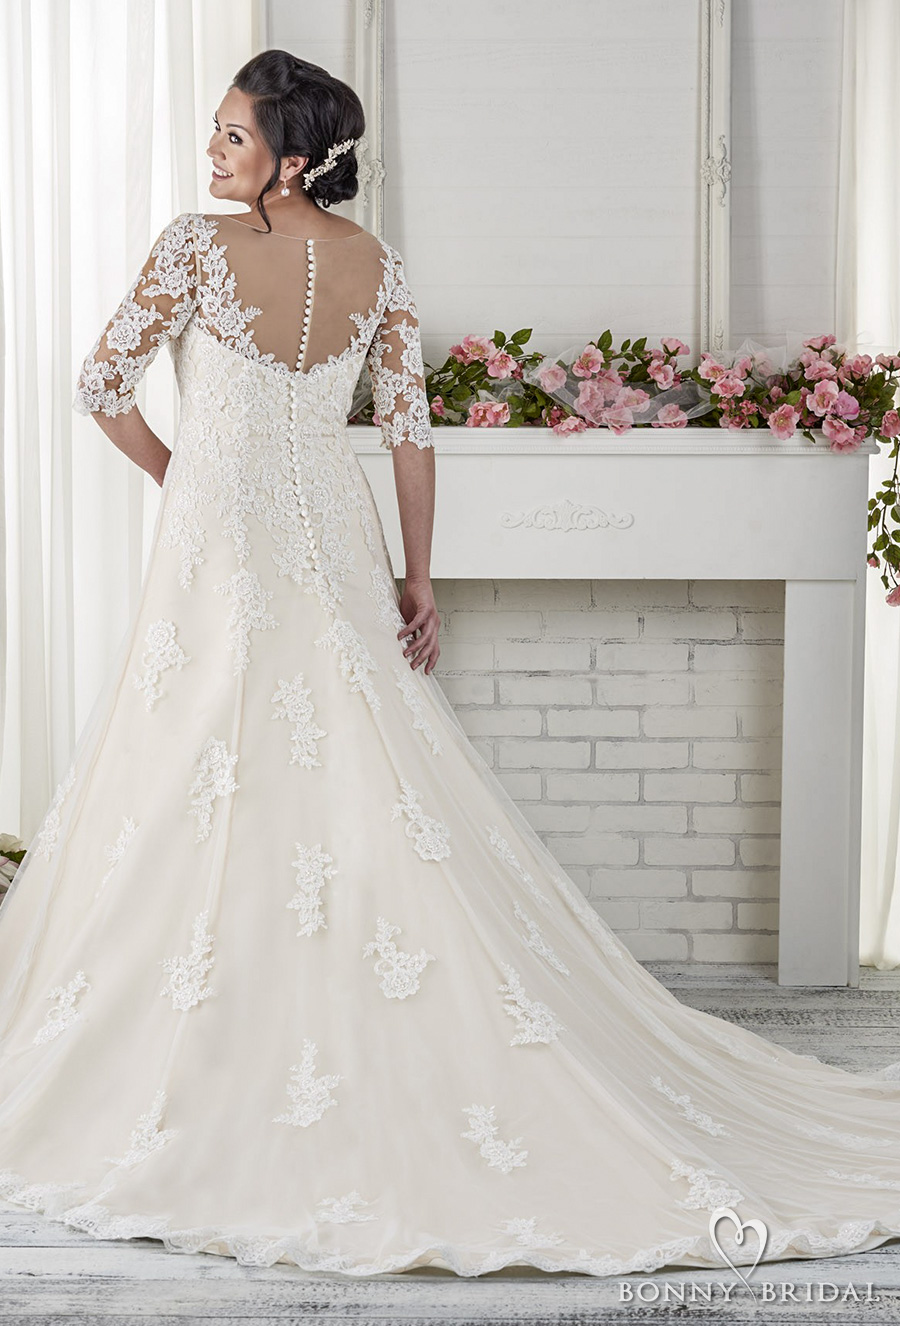 Neckline Lace And Dress Soft Tulle Flare Sweetheart And Embellished Line Fit Wedding